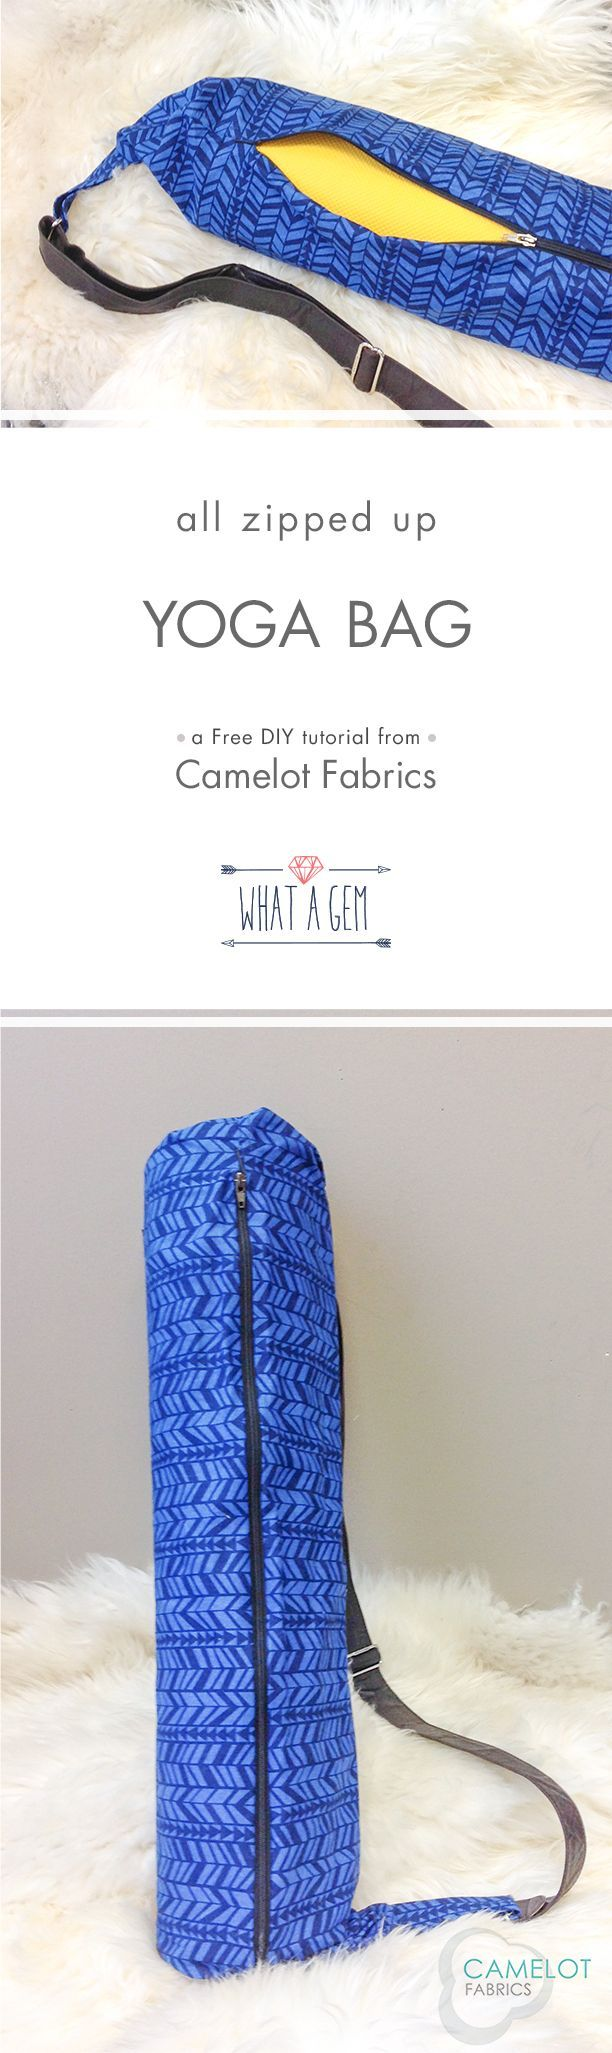 How To's Day   Yoga Bag Tutorial   What a Gem by Allison Cole for Camelot Fabrics